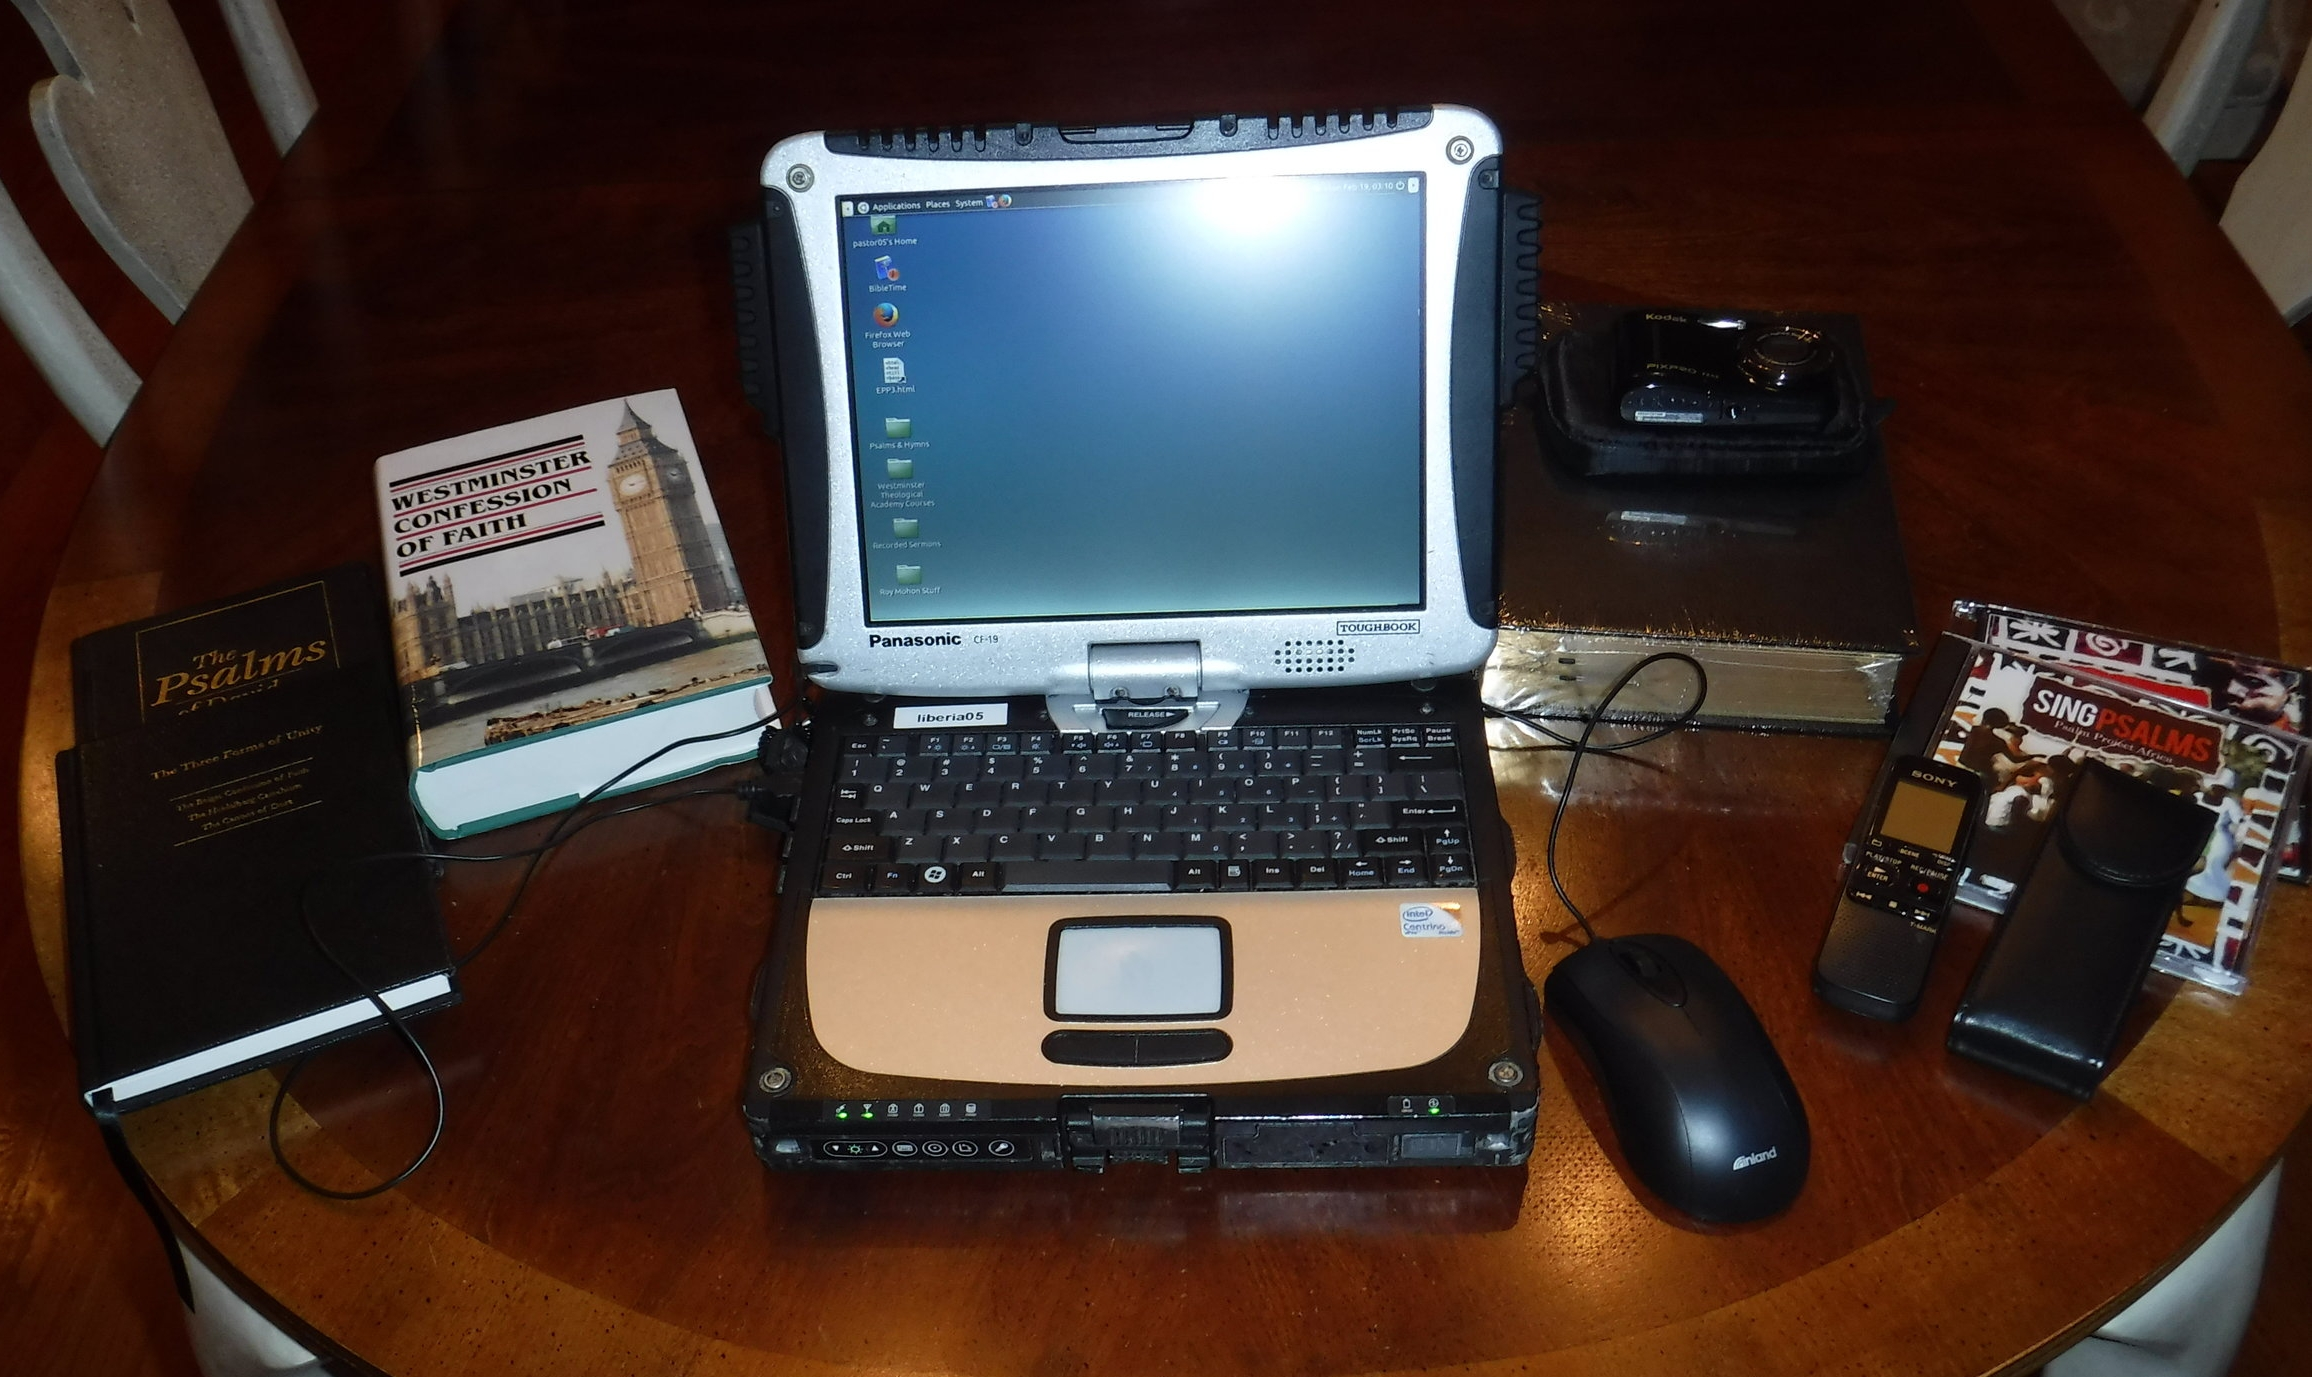 Here are the tools we are trying to put into the hands of every Pastor we are working with. A Panasonic Toughbook computer, a Reformation Heritage Study Bible, the Westminster Standards, the Three Forms of Unity, a Psalter, Sing Psalms Africa CDs, a Sony MP3 Recorder, and a Camera.